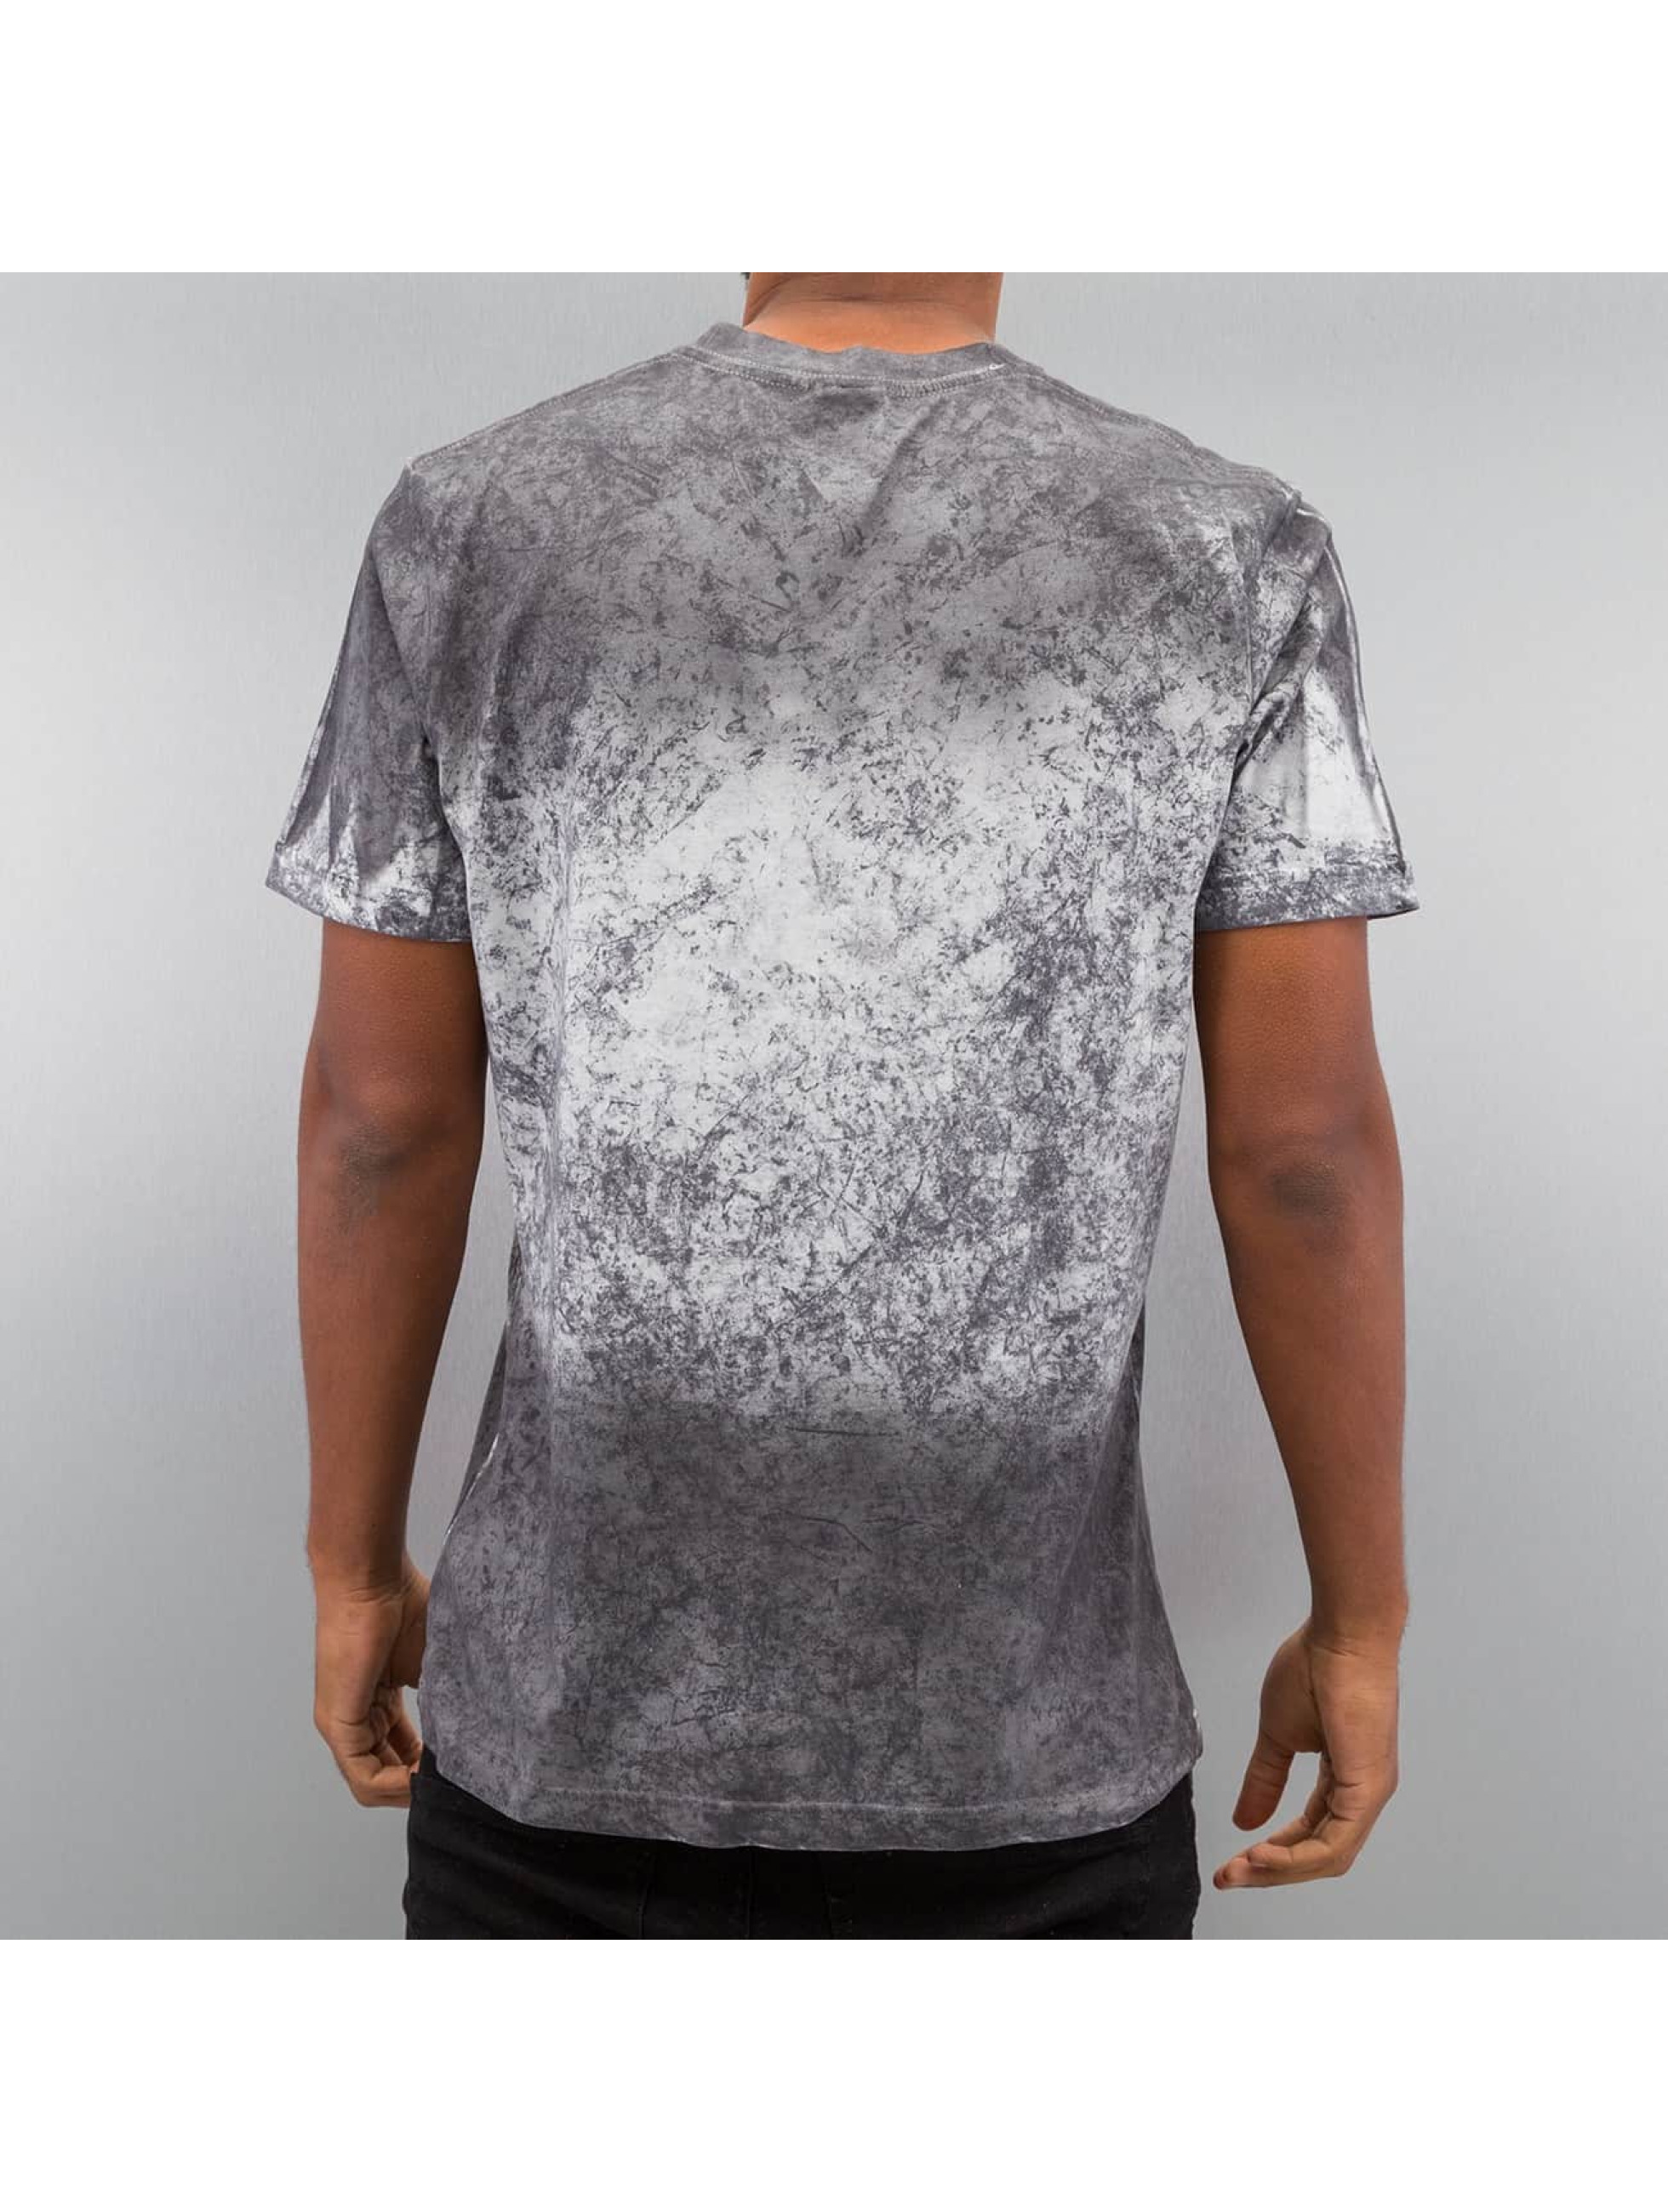 DEF t-shirt Marble wit